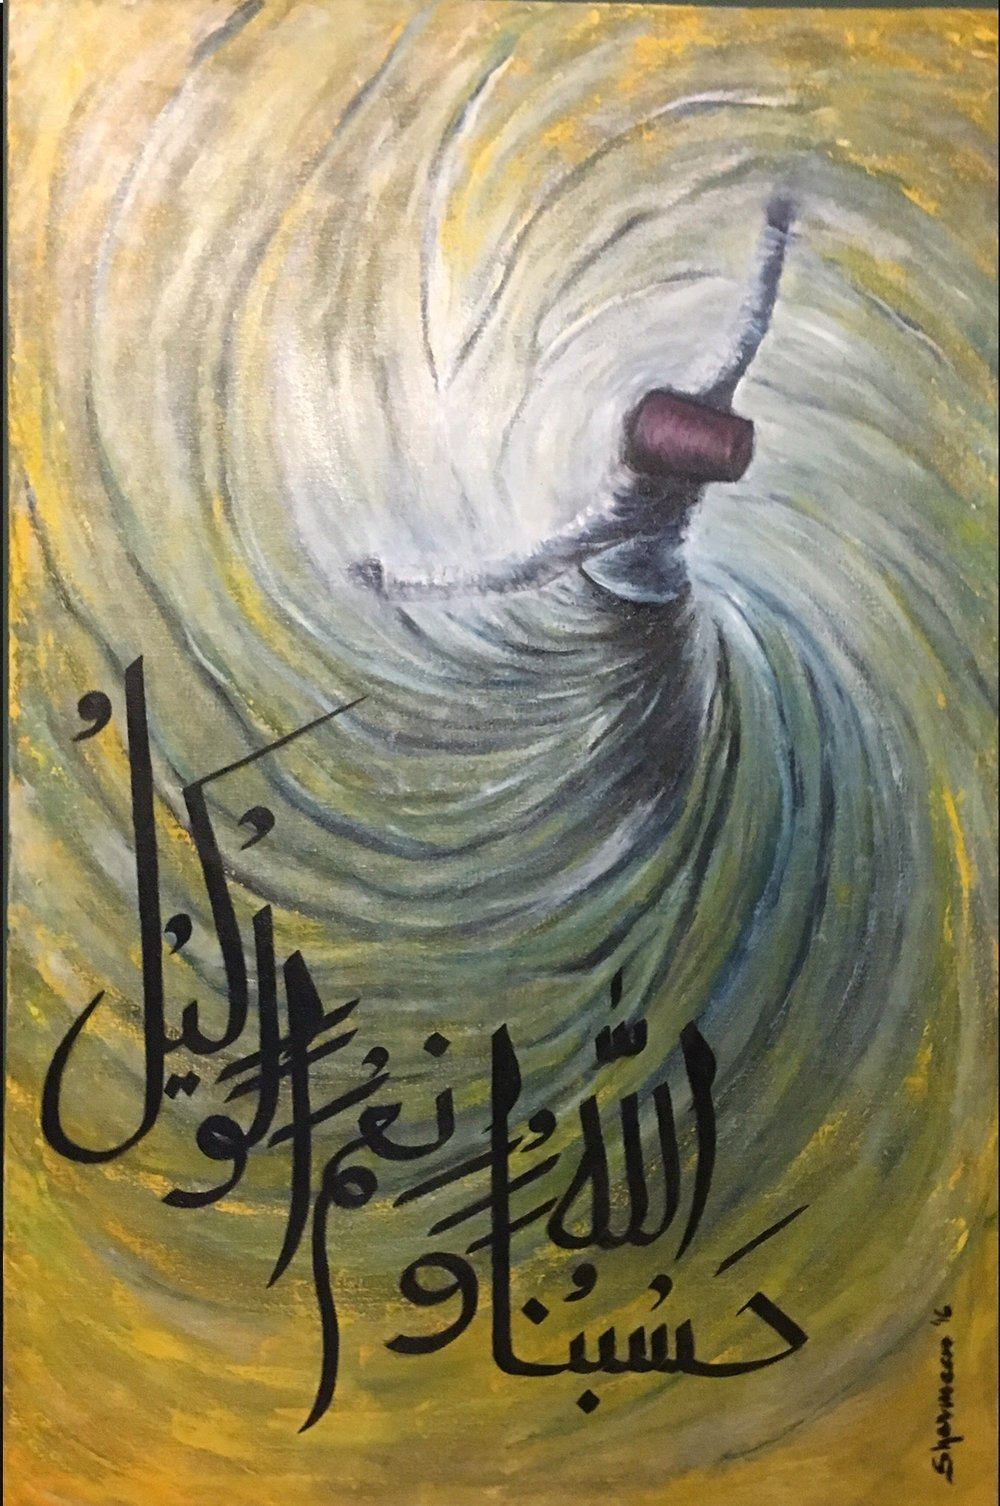 Whirling Dervish I - 2016. Oil on Canvas. 35.5